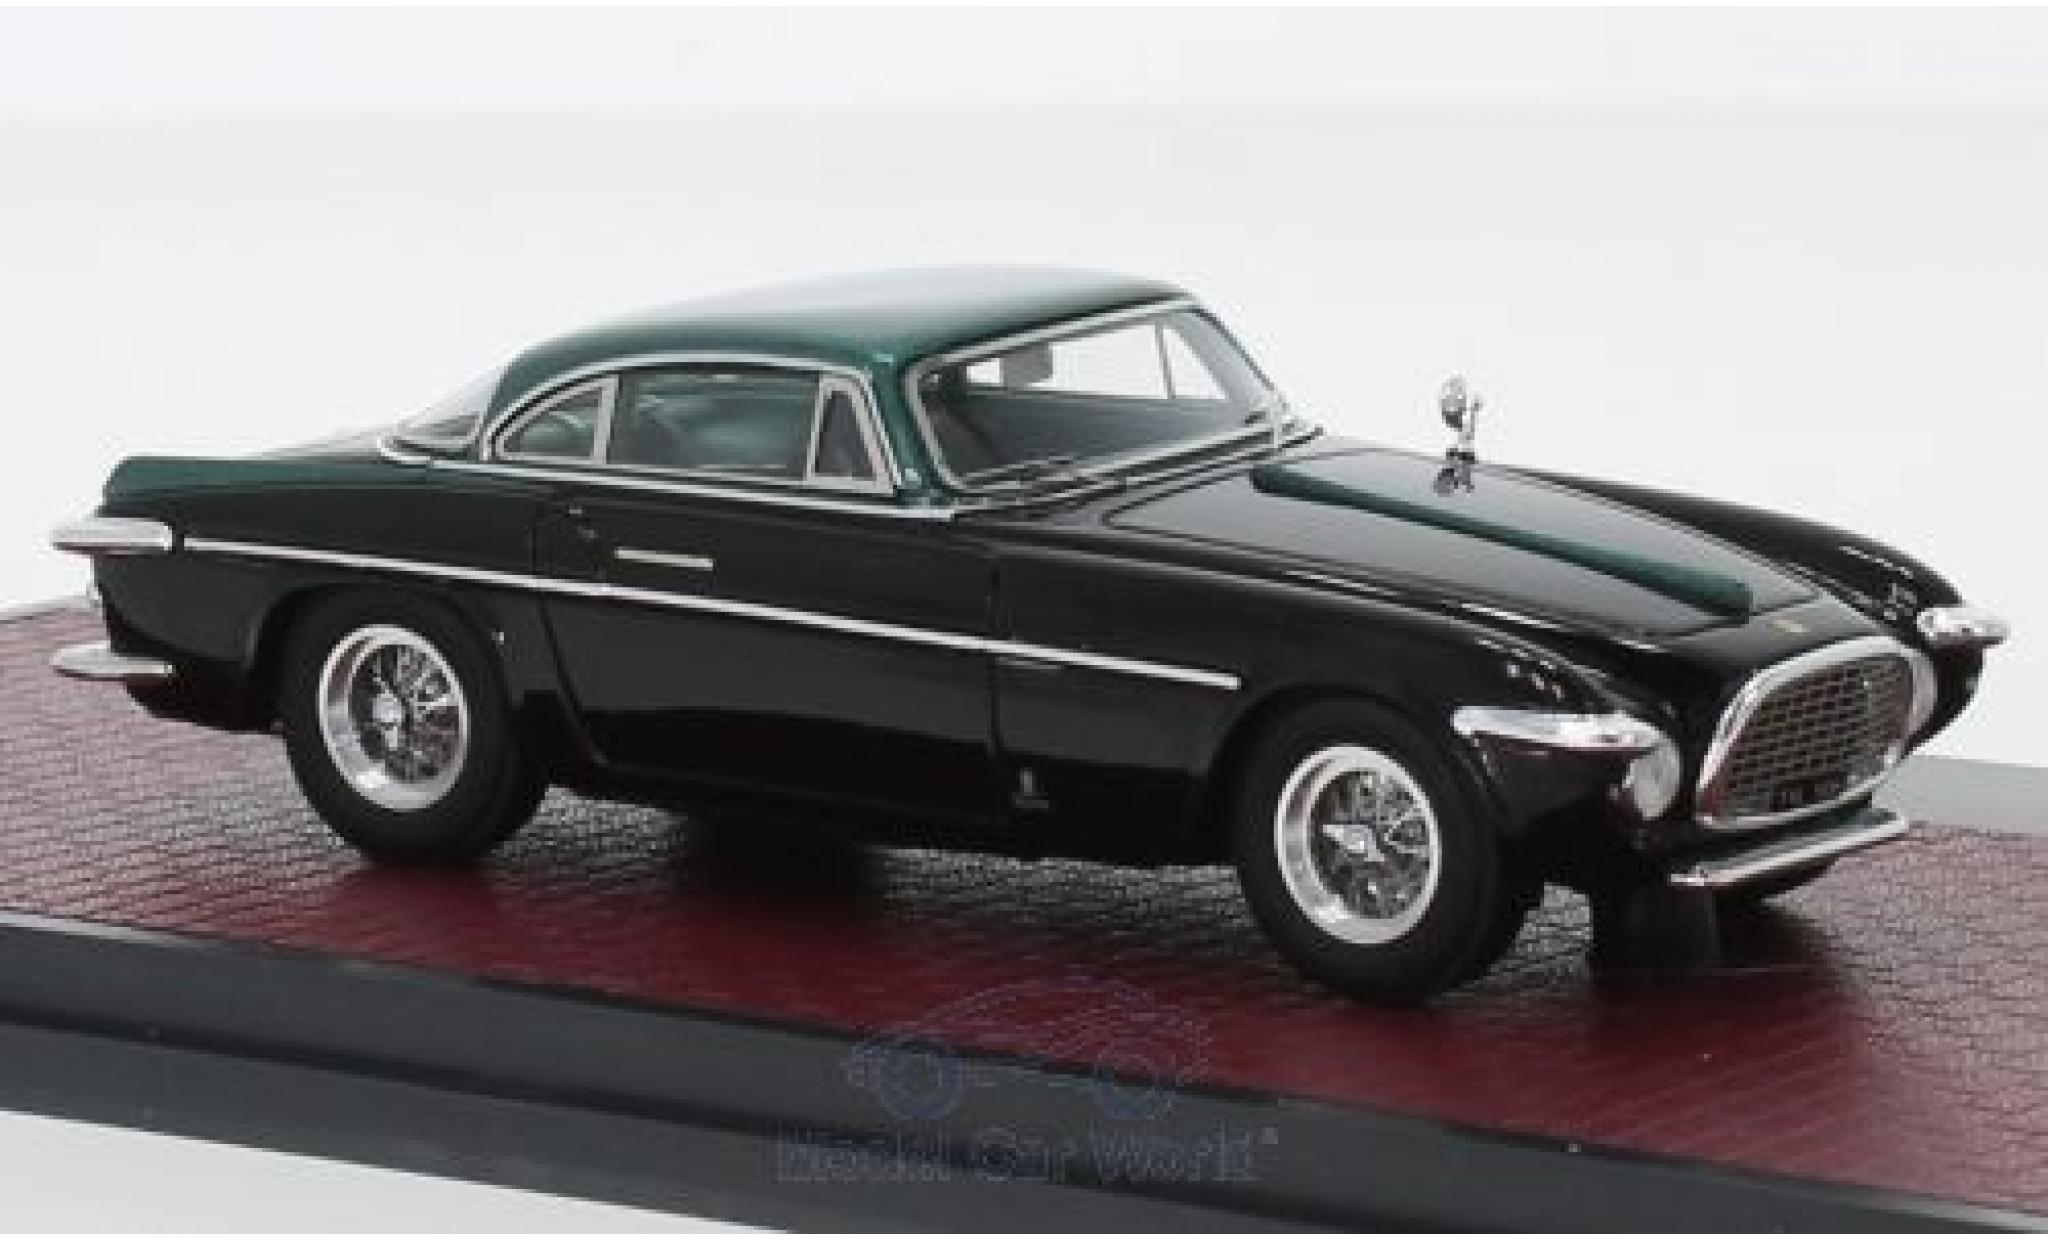 Ferrari 212 1/43 Matrix Inter Coupe Vignale nero/verde RHD 1953